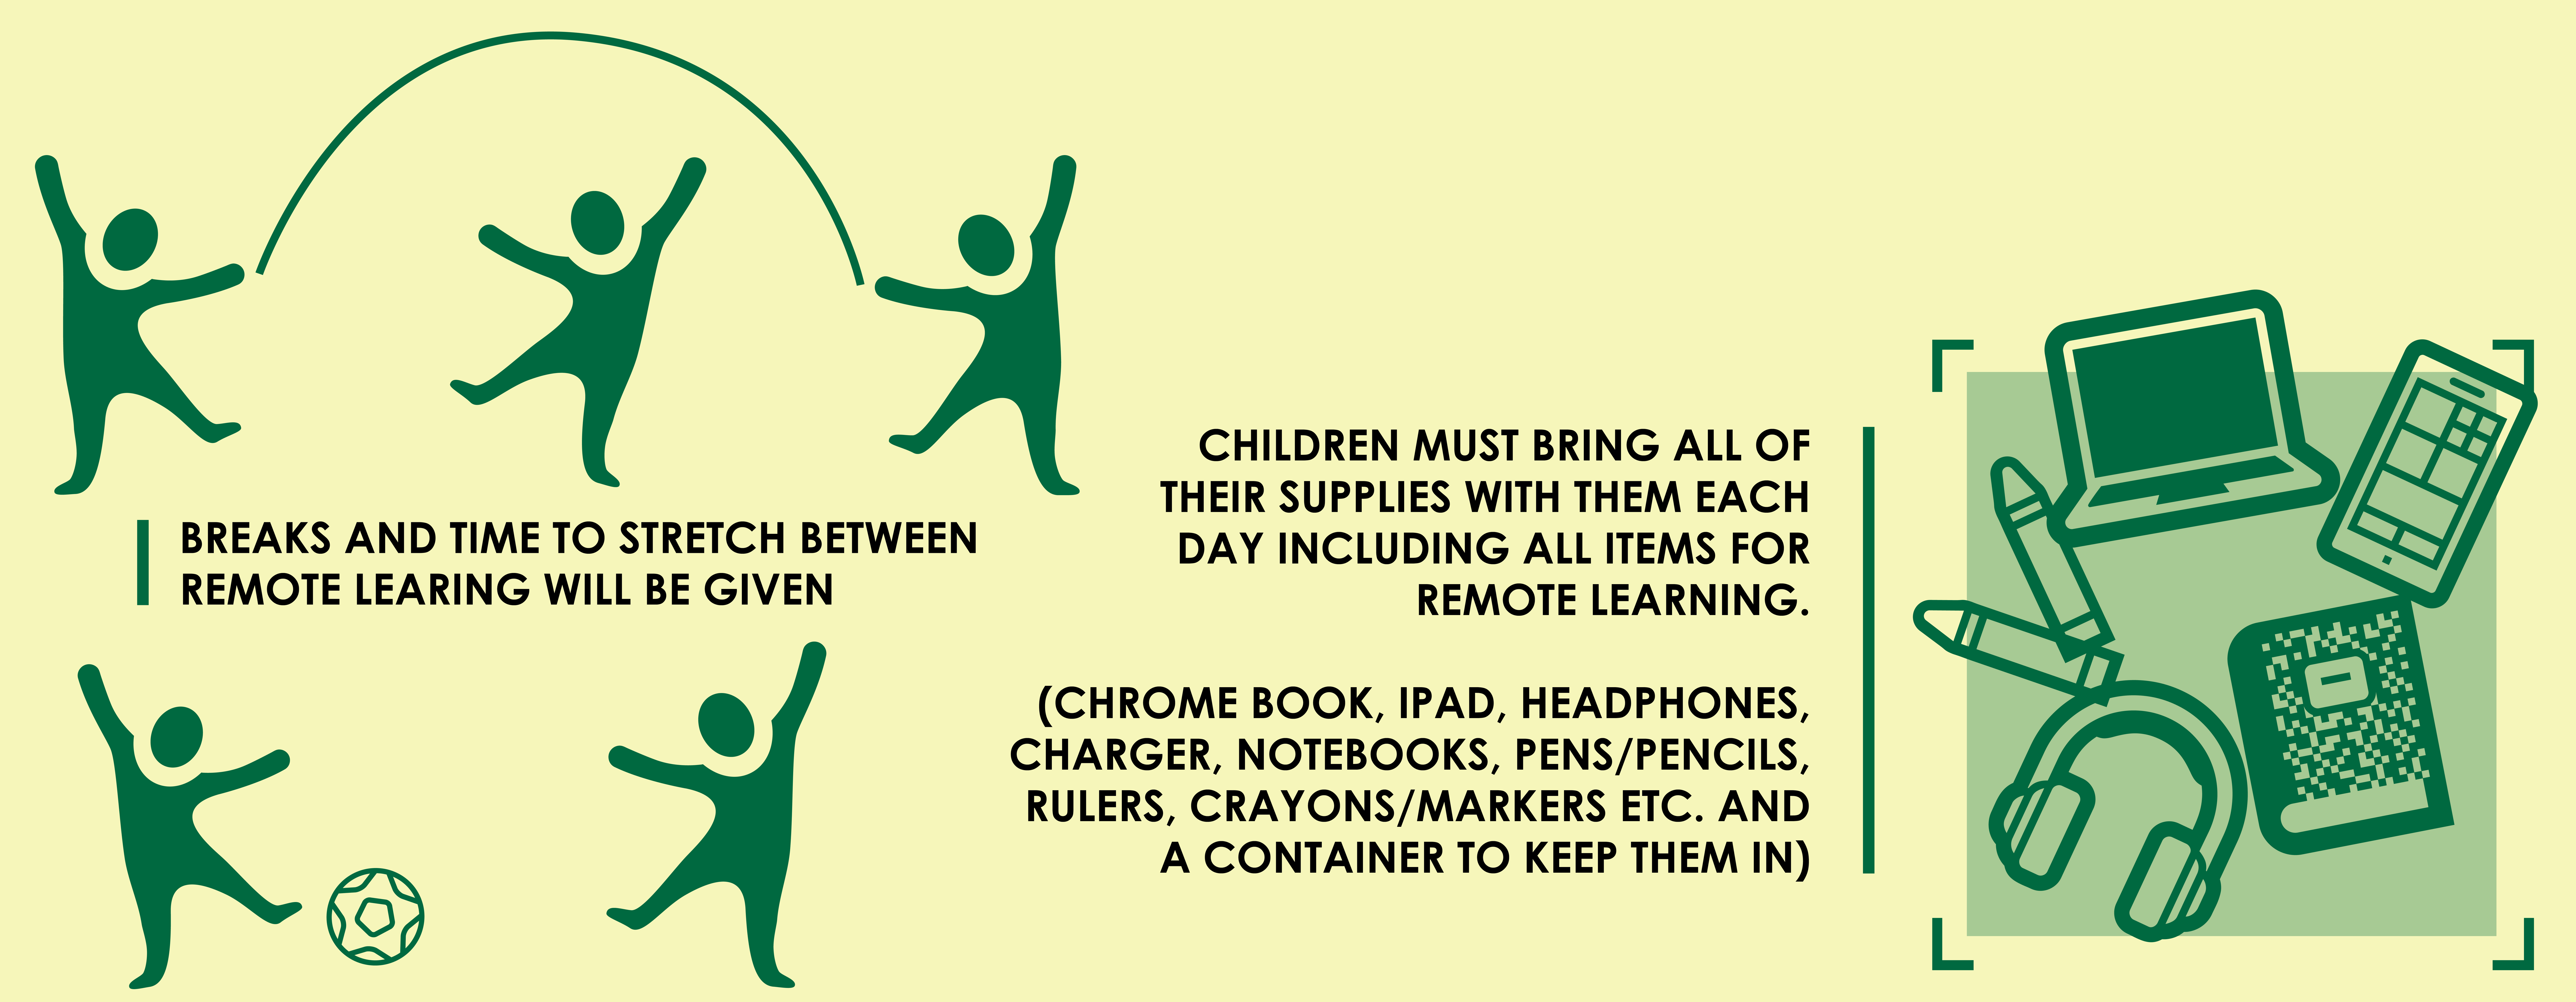 Please bring all materials for remote learning from home, including a container to keep them in. Breaks and time to stretch between remote learning will be given.